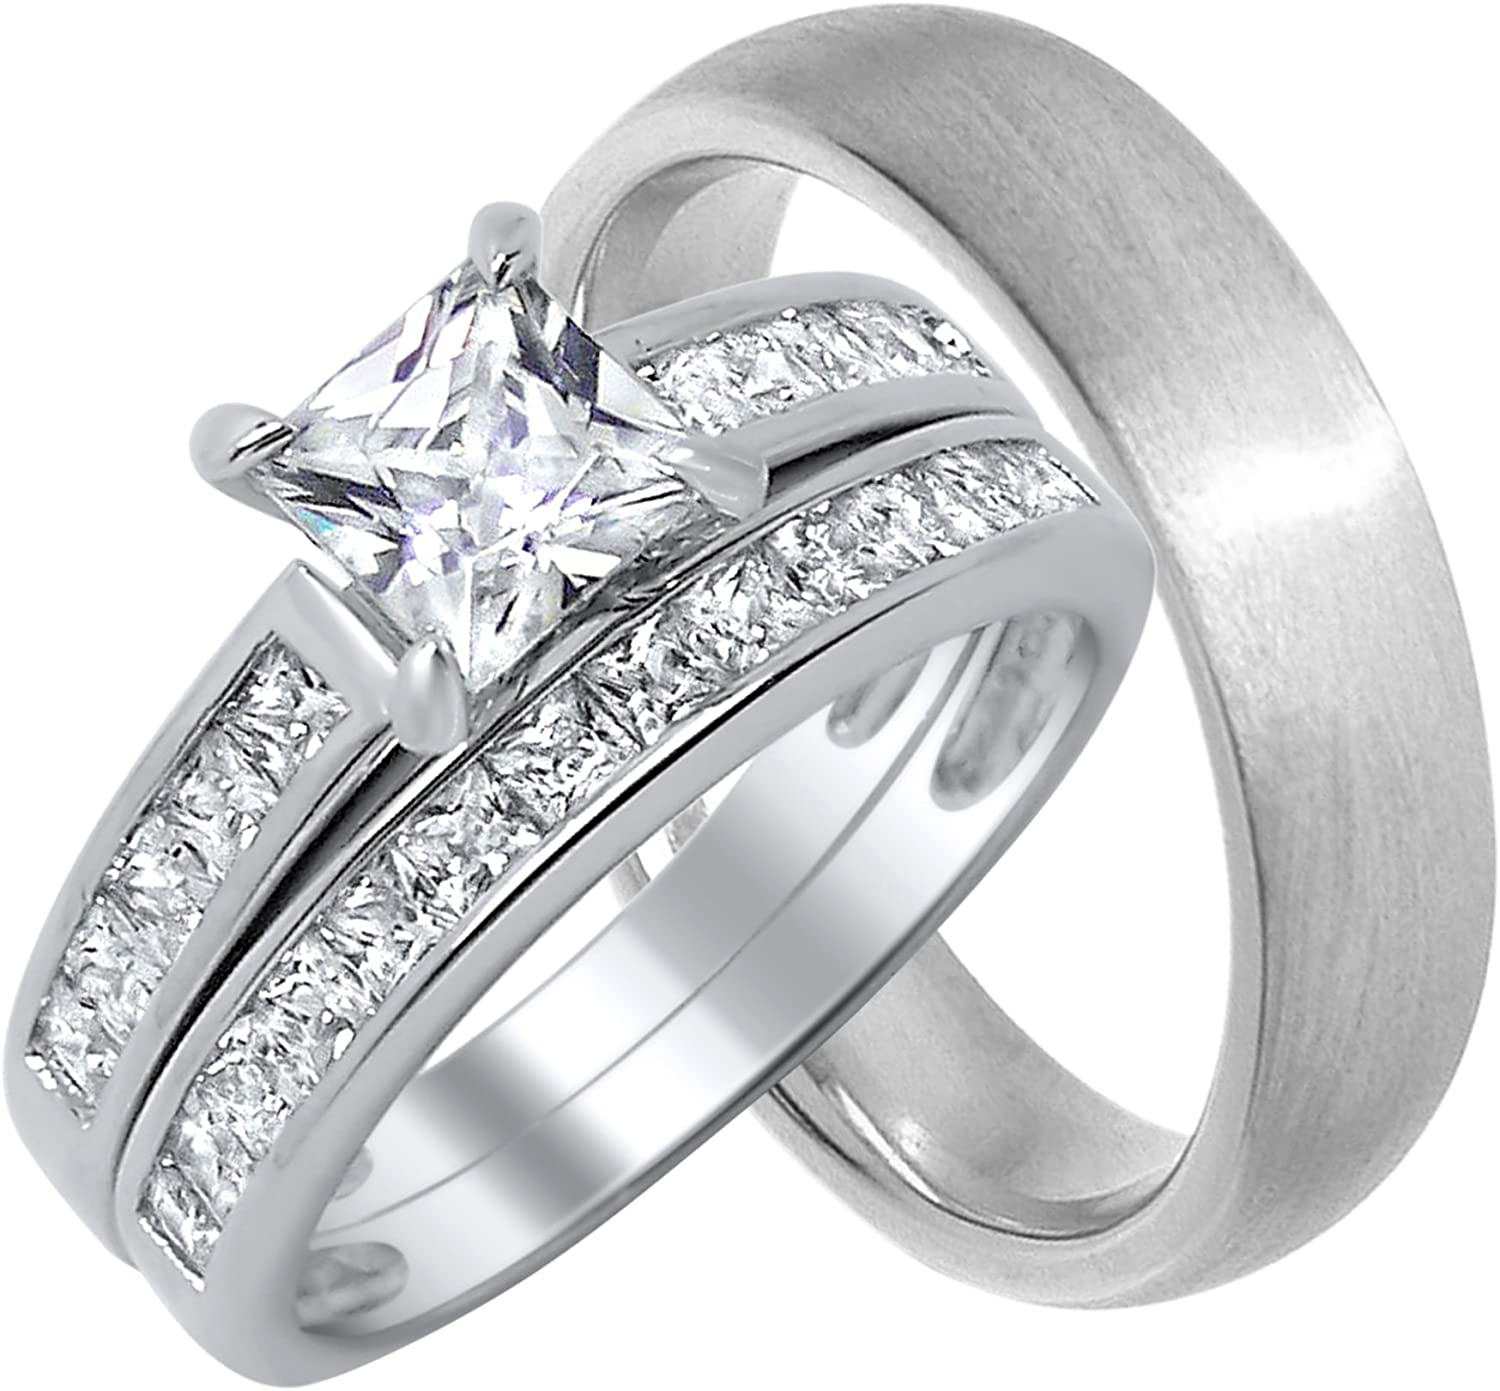 His and Her Wedding Ring Set Matching Bands for Him and Her (Choose Sizes)